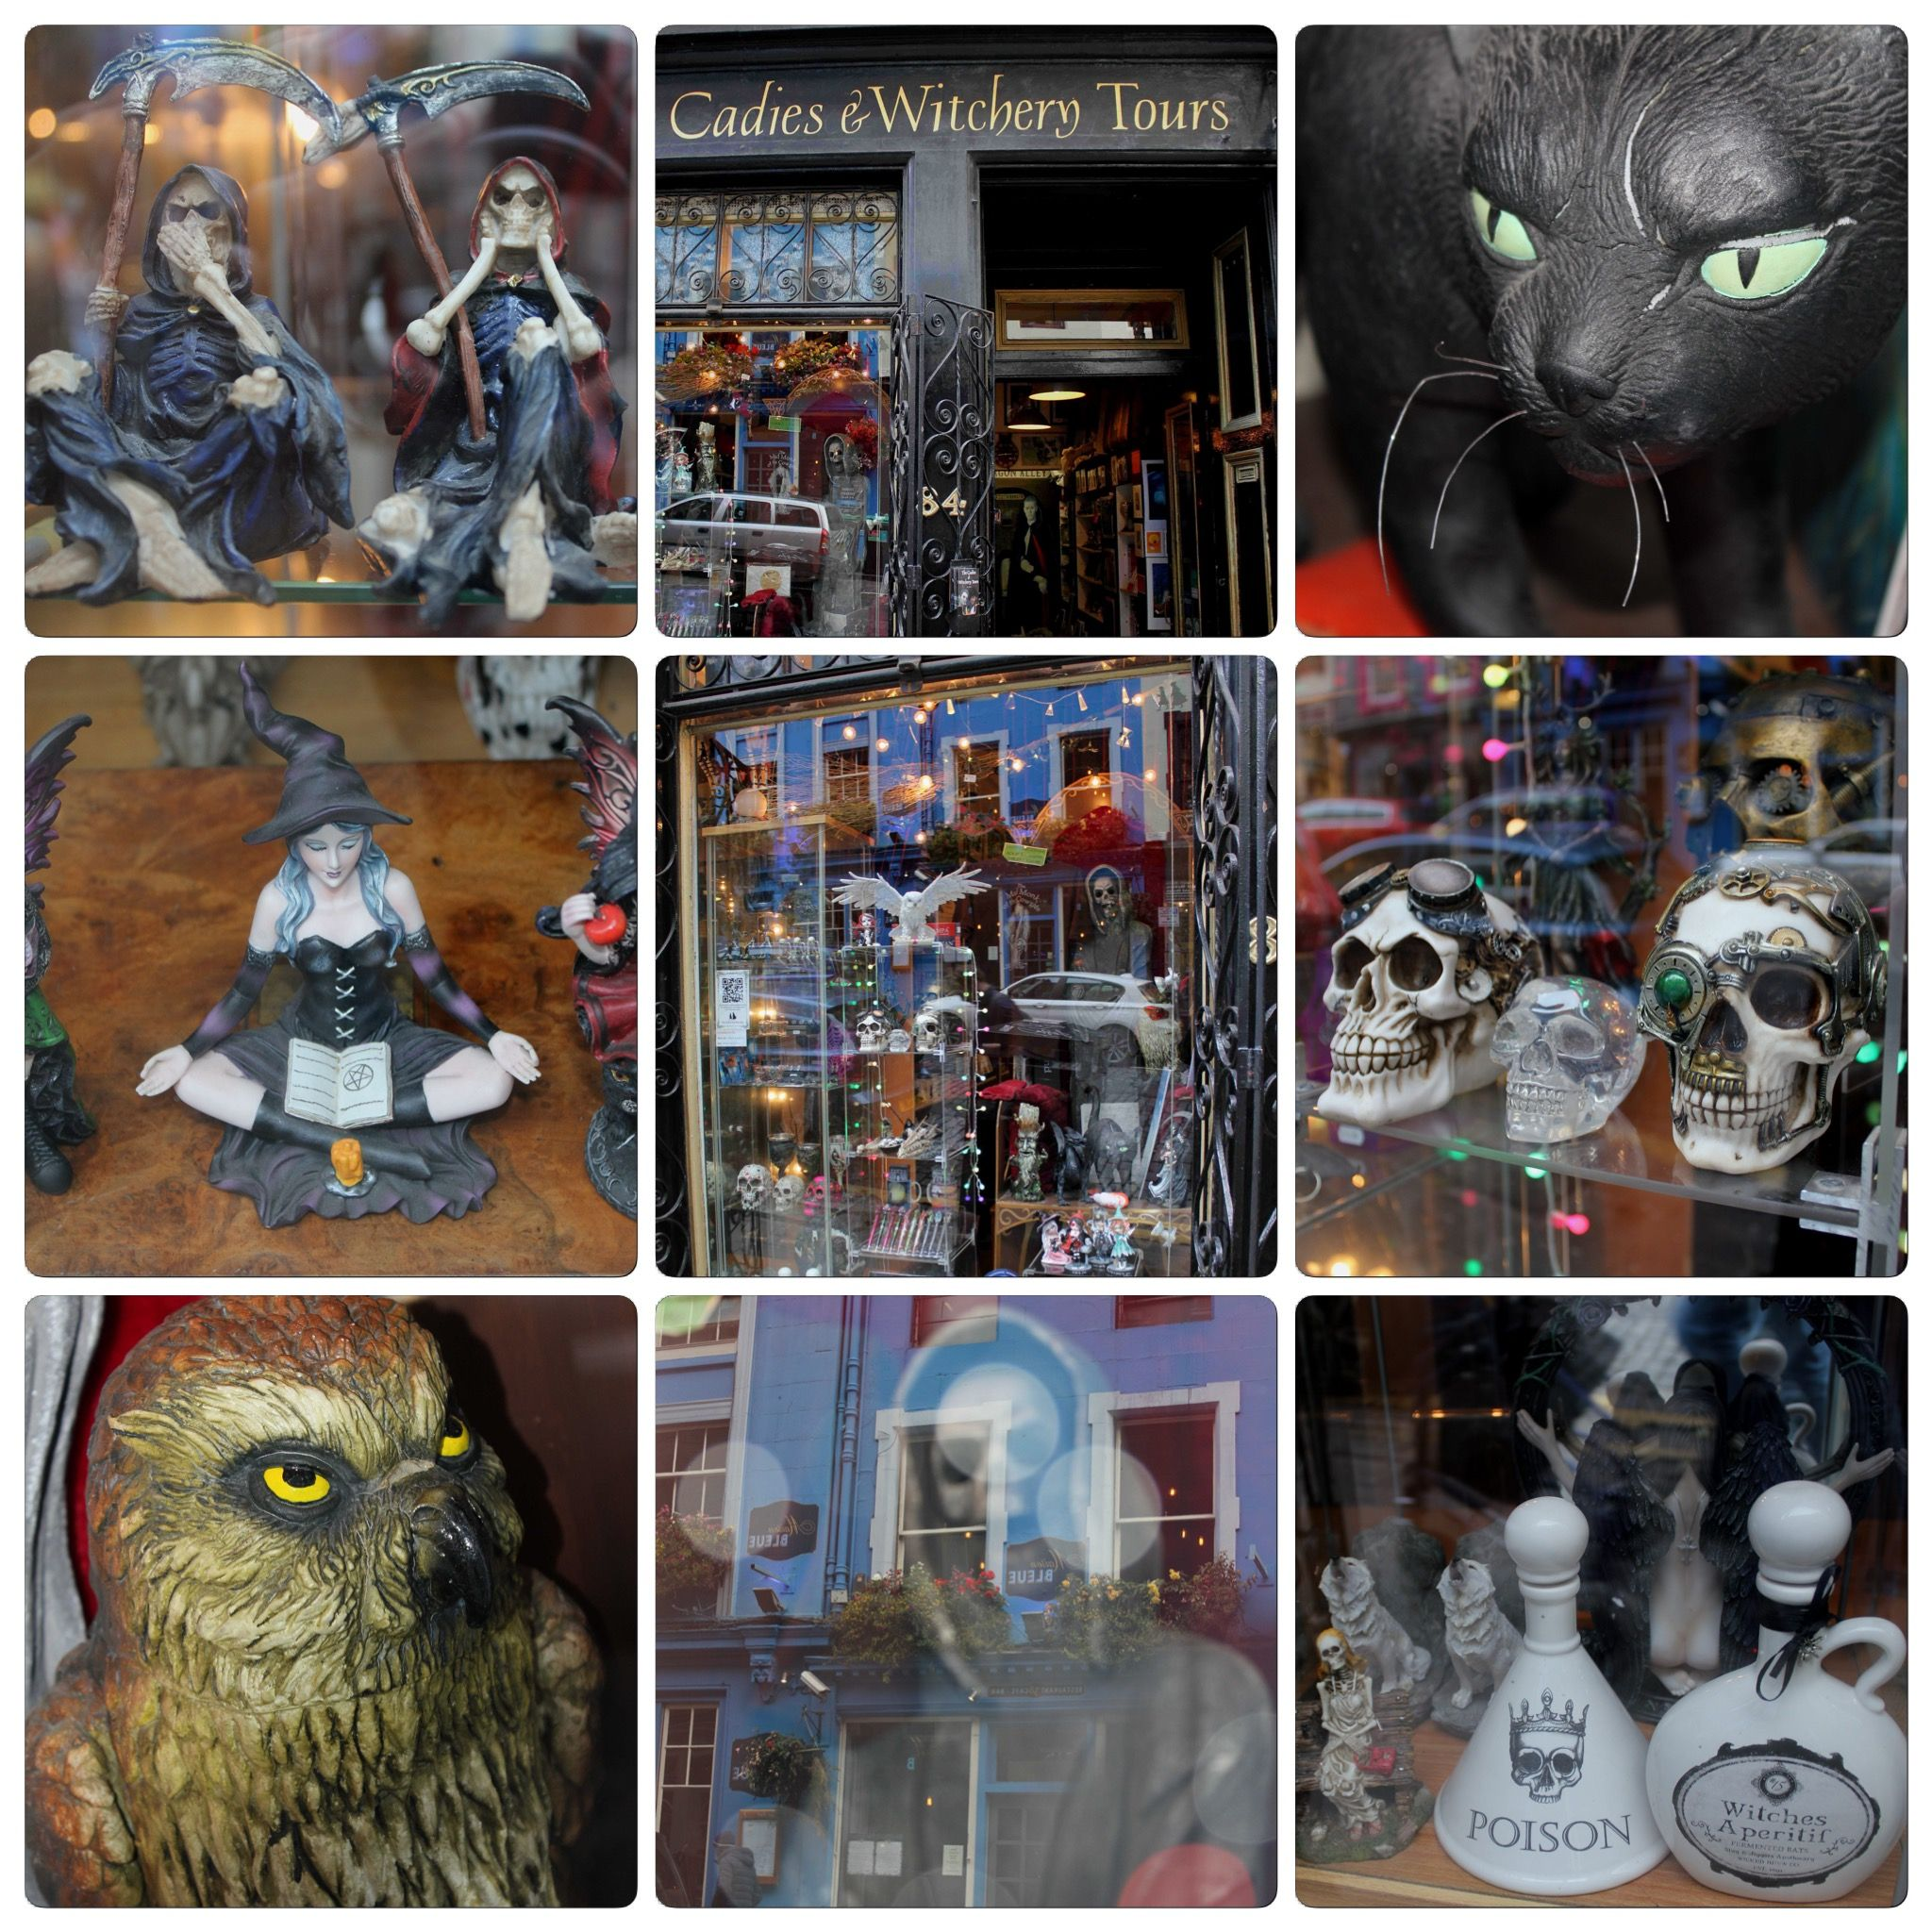 The Cadies Witchery Tours Shop Window At 84 West Bow Victoria Street